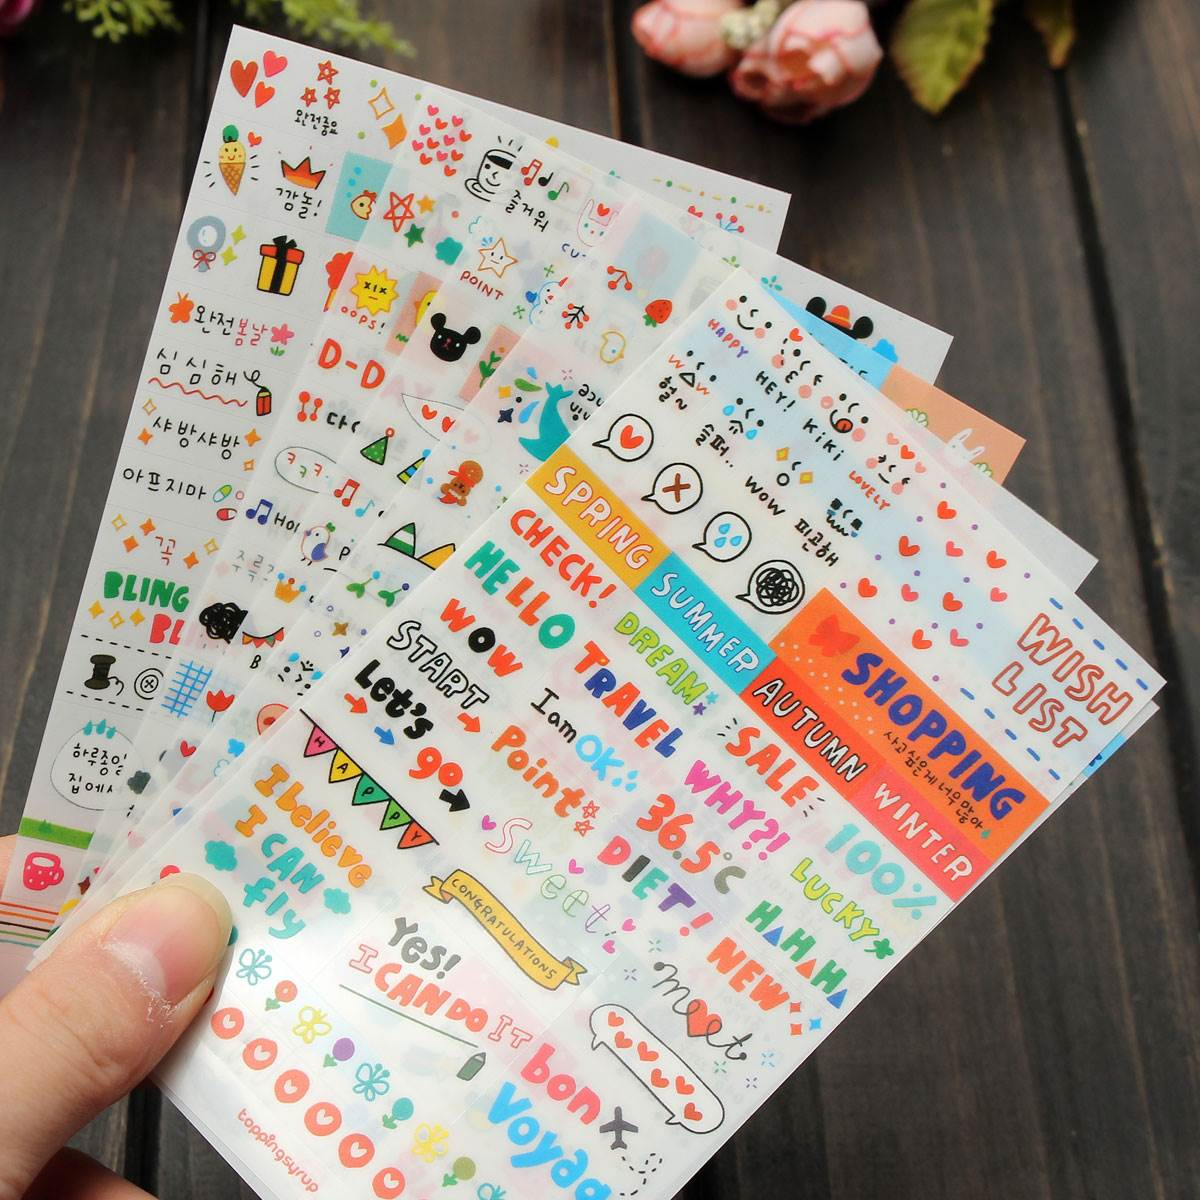 Scrapbook paper booklet - Aliexpress Com Buy 6 Sheets Pack Cute Diy Word Expression Diary Album Diy Scrapbooking Paper Sticker Book Calendar Card Scrapbooking From Reliable